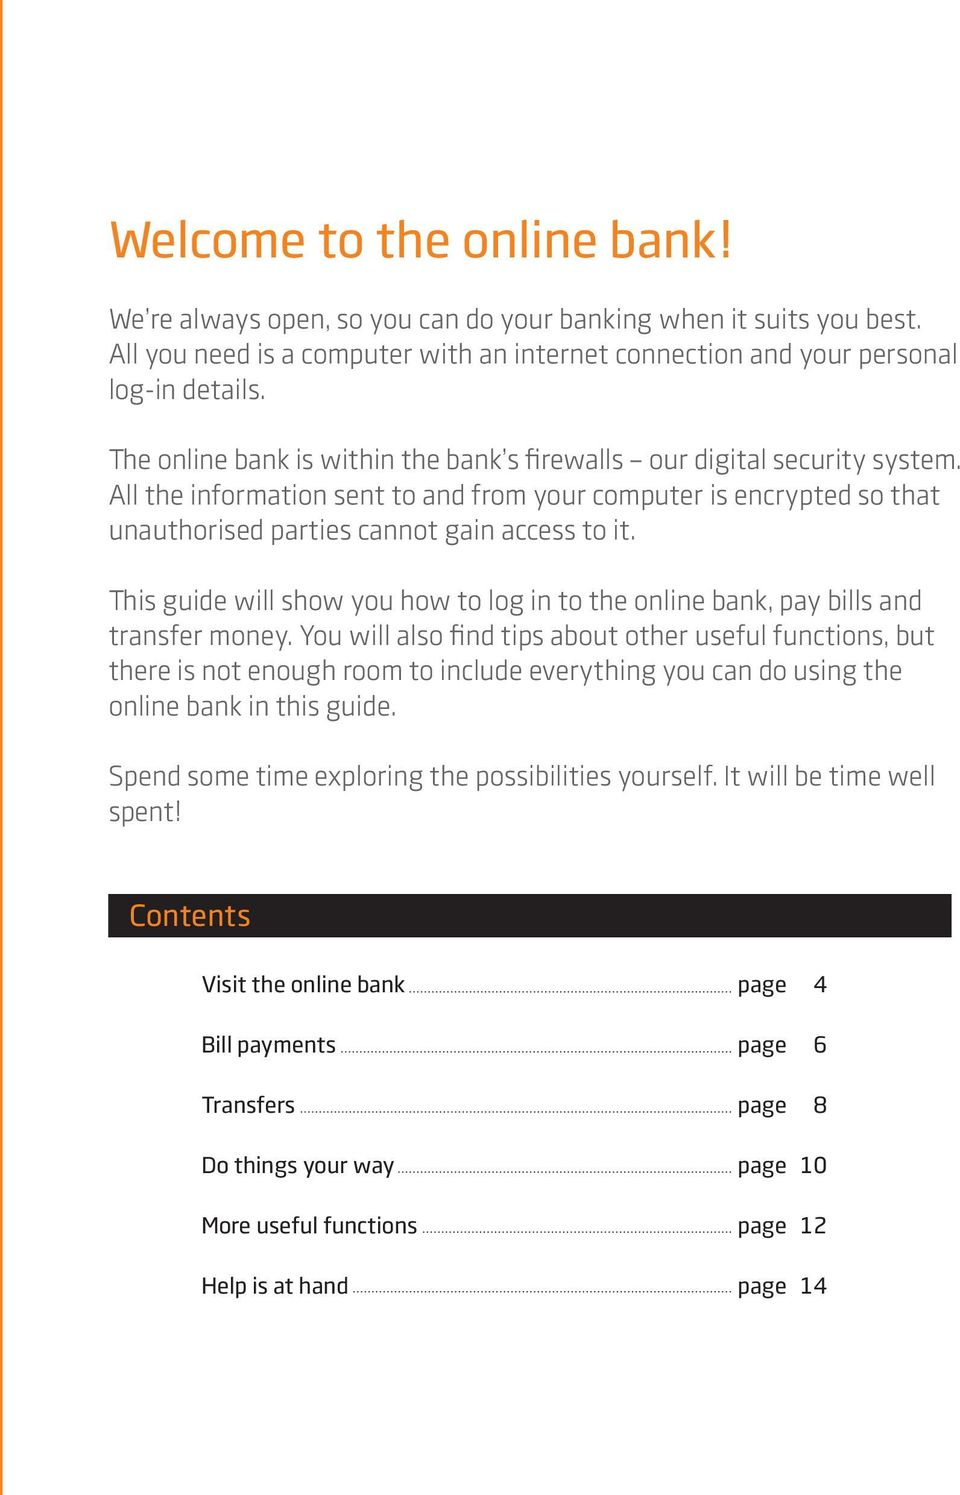 This guide will show you how to log in to the online bank, pay bills and transfer money.